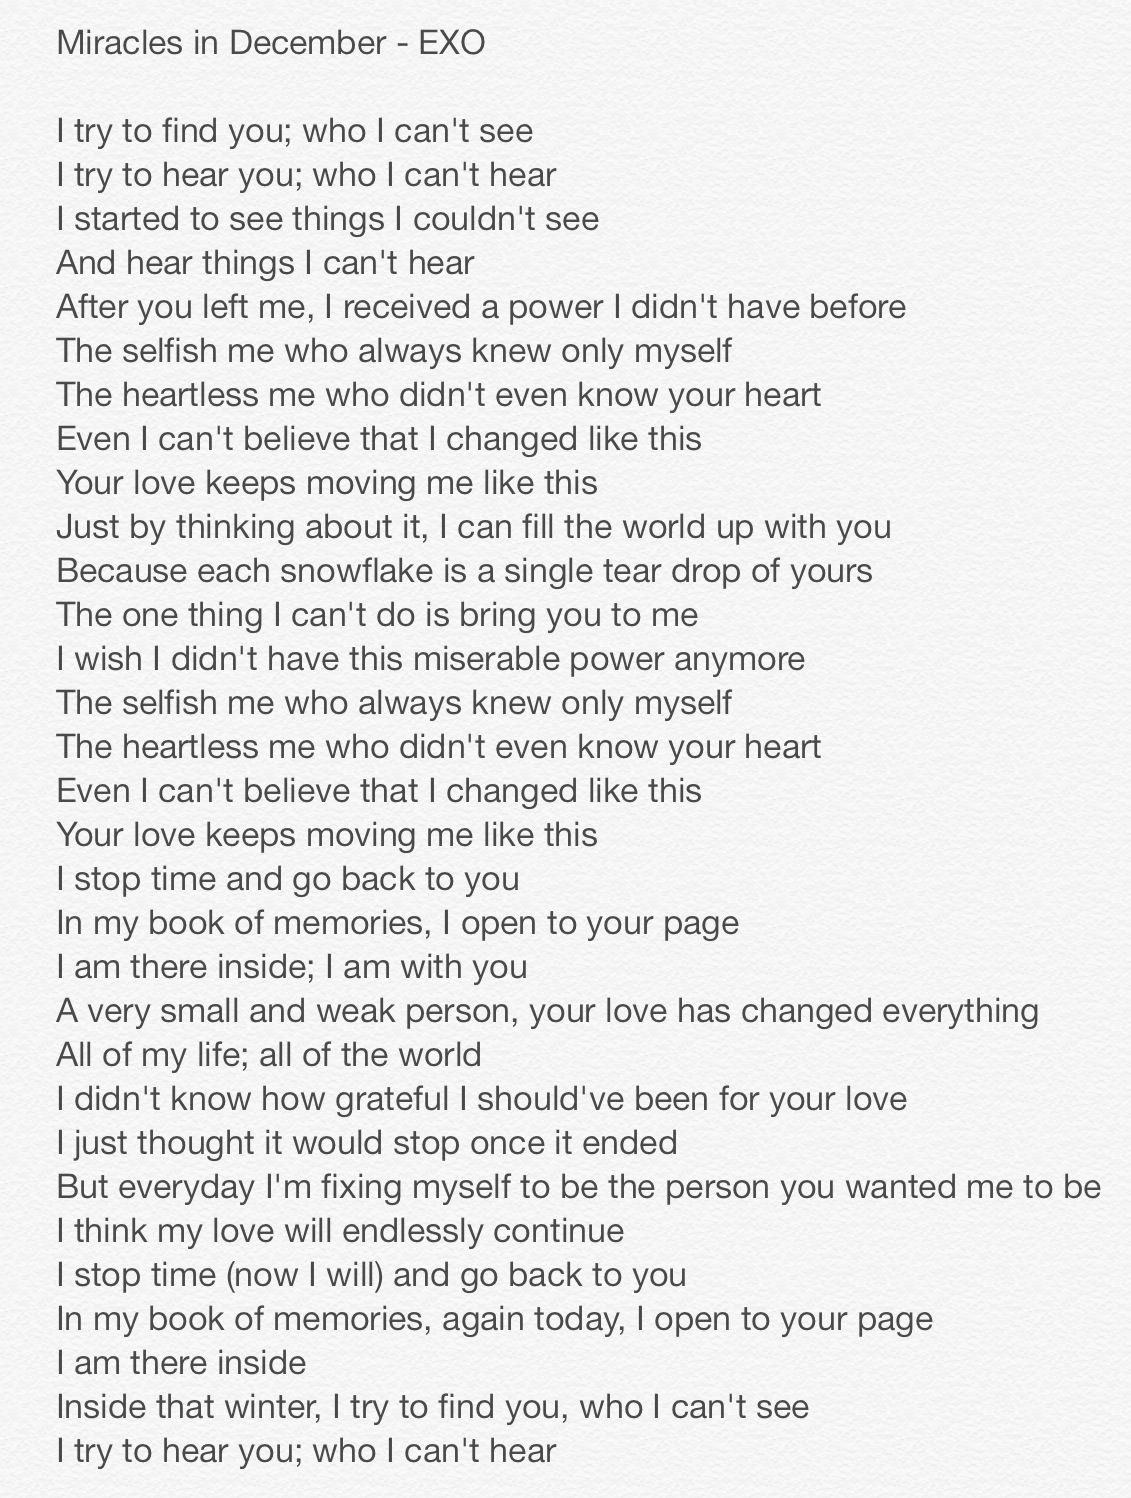 Miracles in December lyrics I'm sorry for the feels but